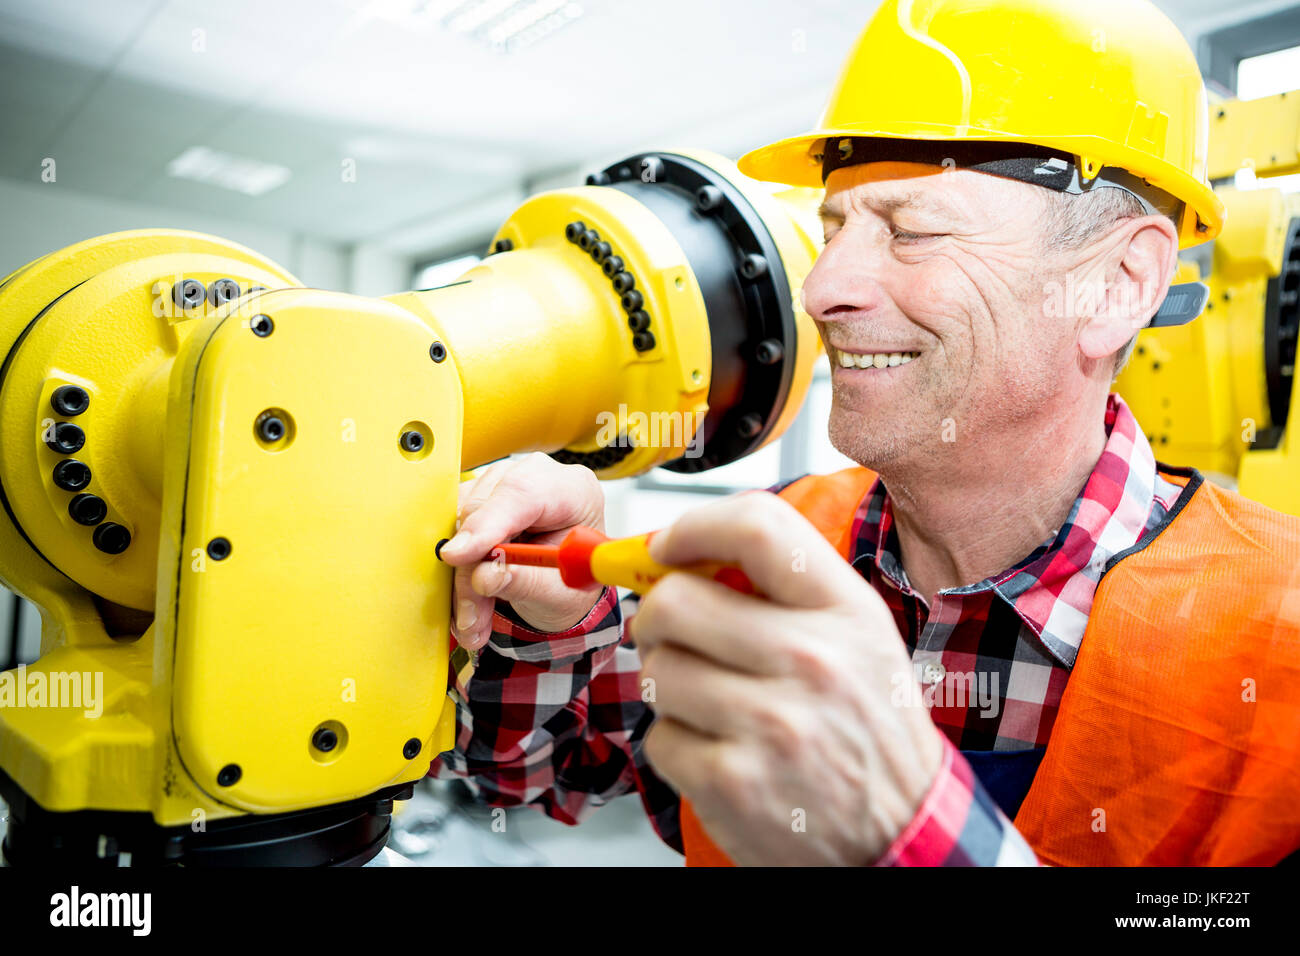 Smiling technician working on industrial robot - Stock Image